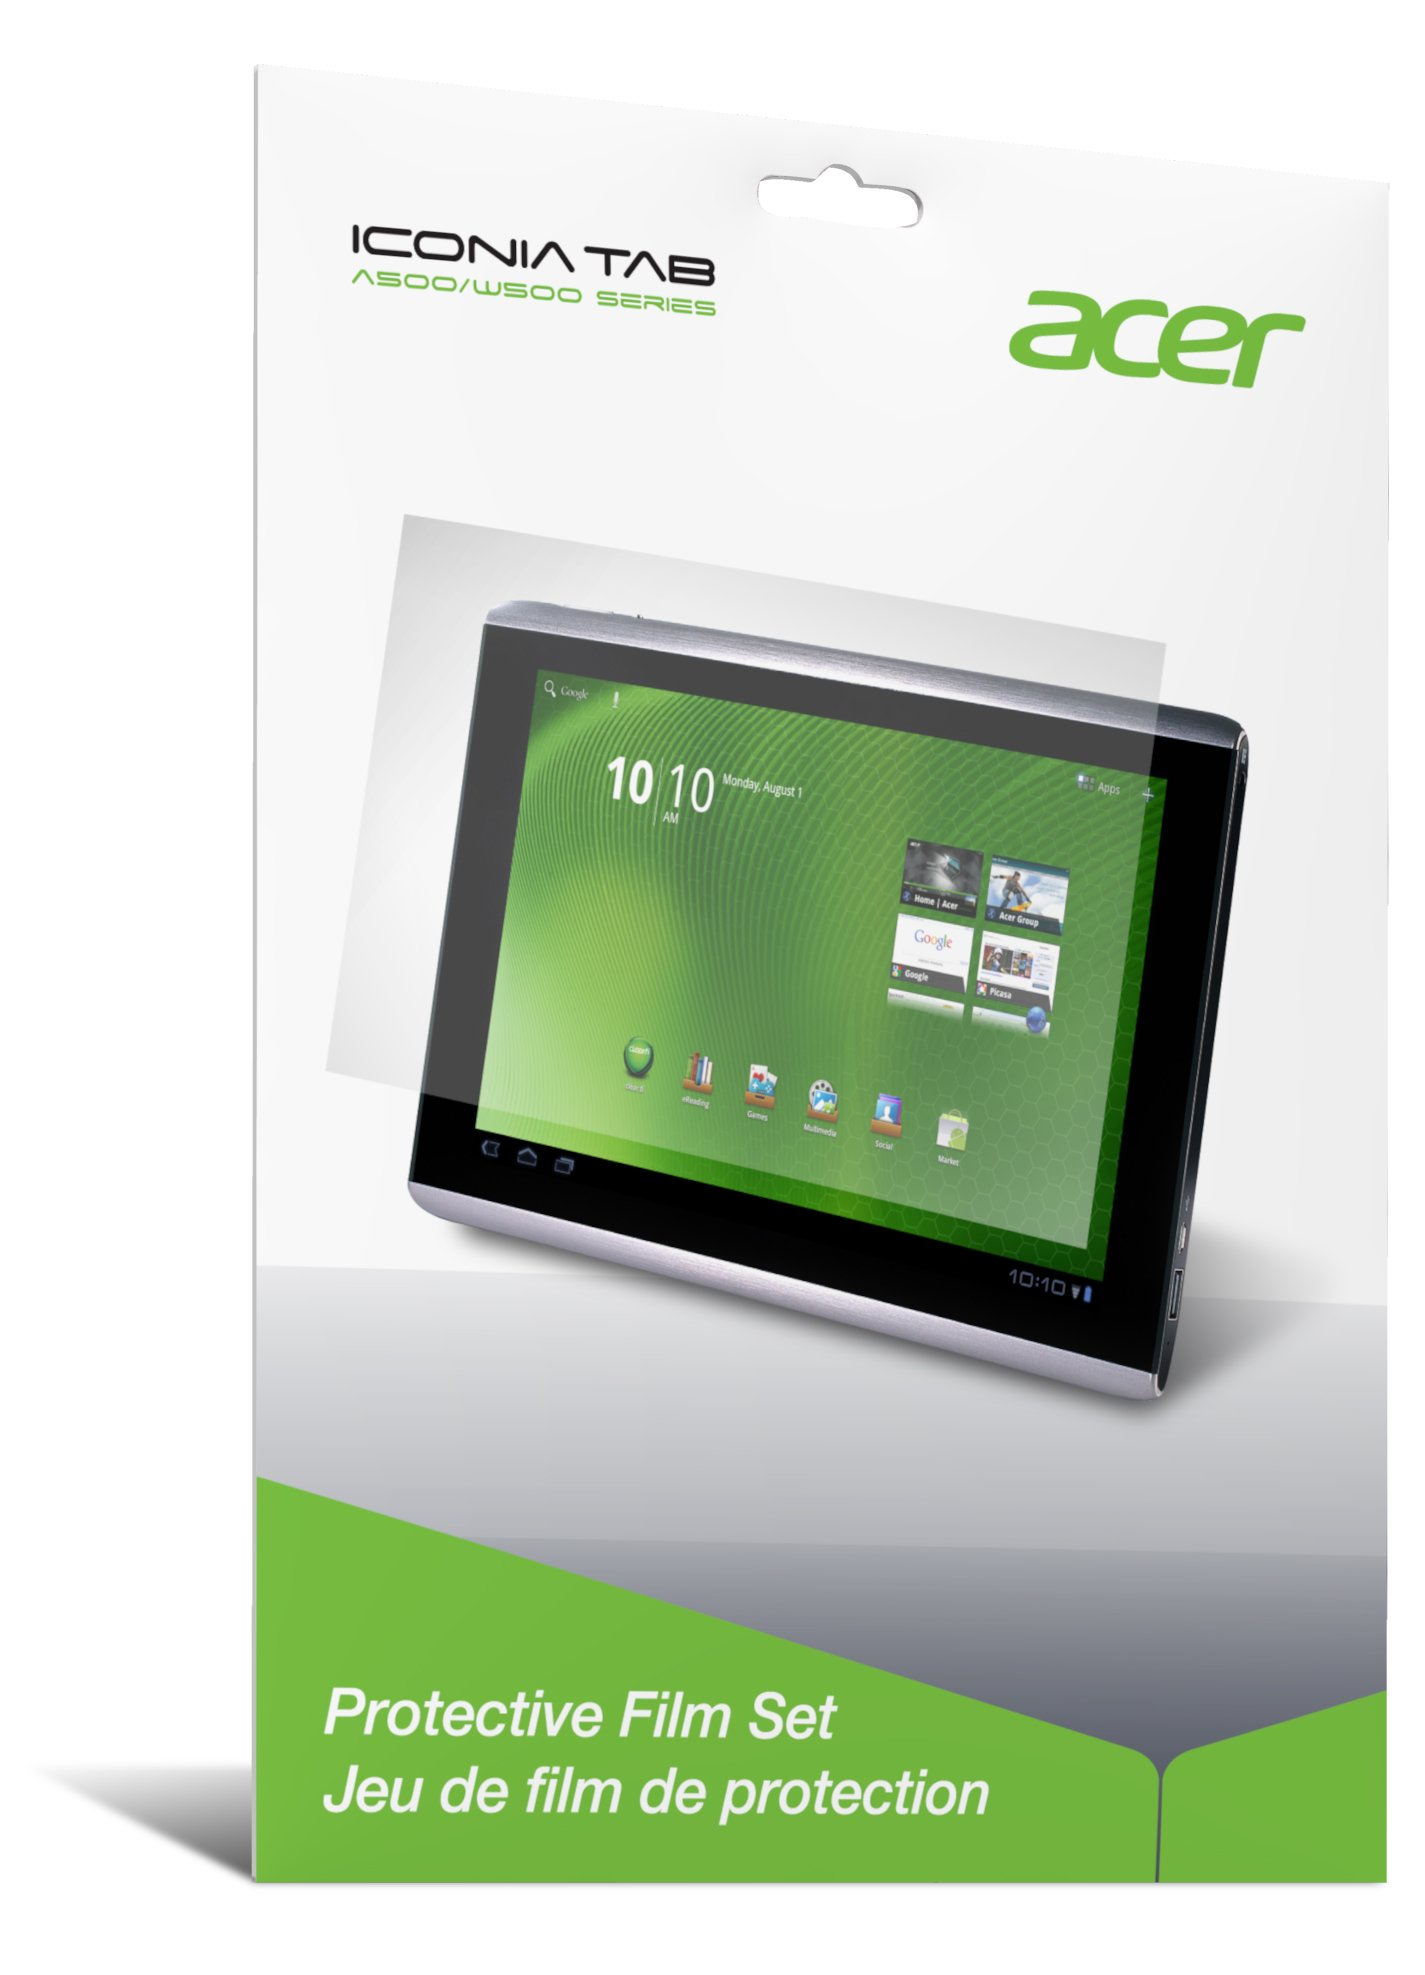 Acer Iconia Tab A500/A501 Protective Film Set (A500F01AG)